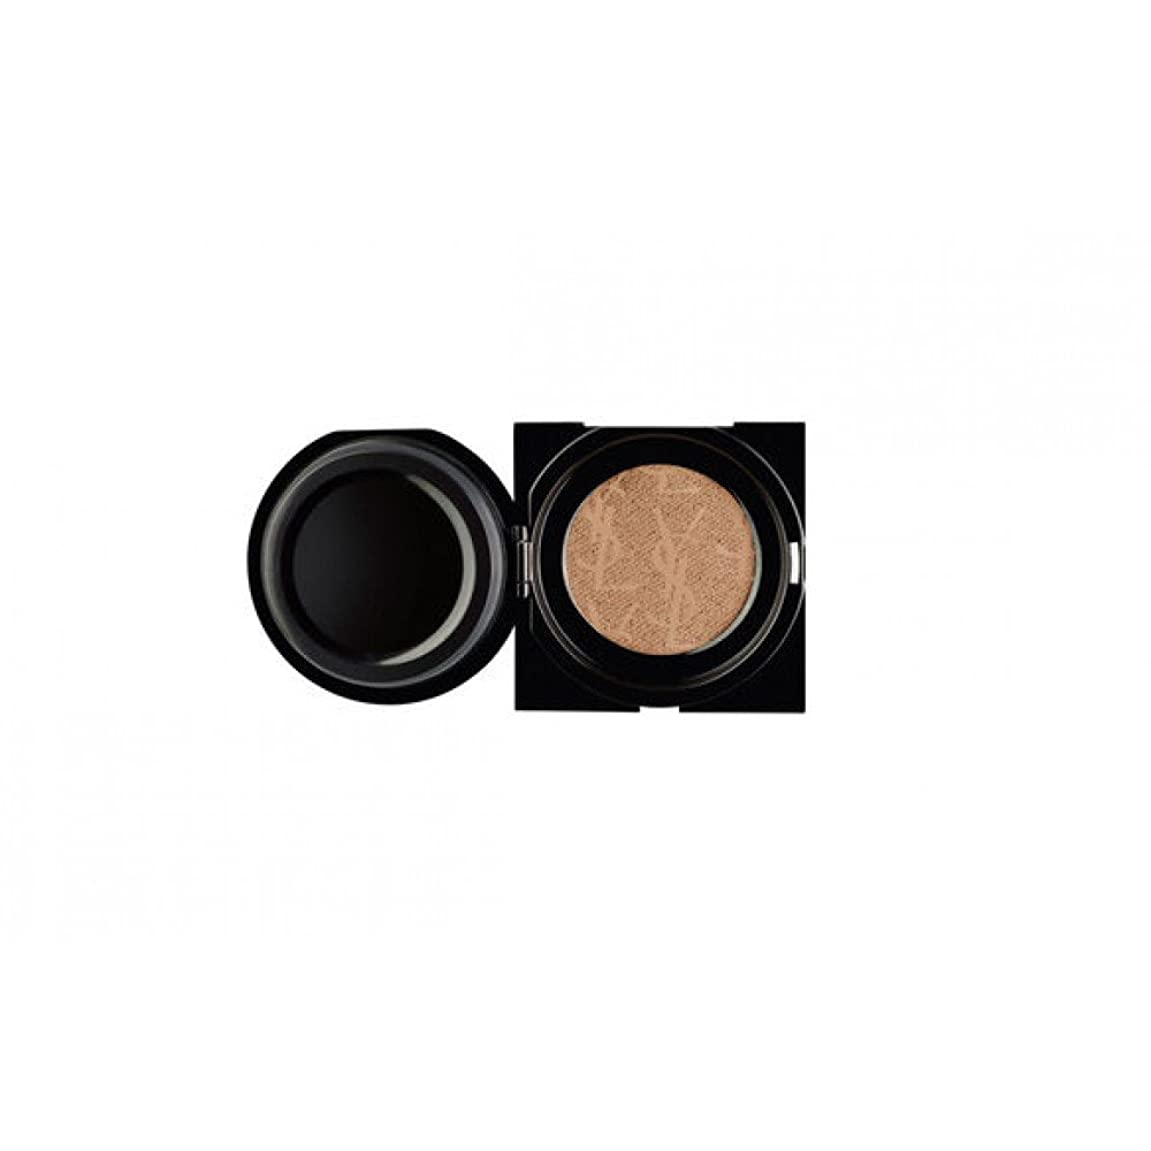 破裂すごい慣れているイヴサンローラン Touche Eclat Le Cushion Liquid Foundation Compact Refill - #B60 Amber 15g/0.53oz並行輸入品